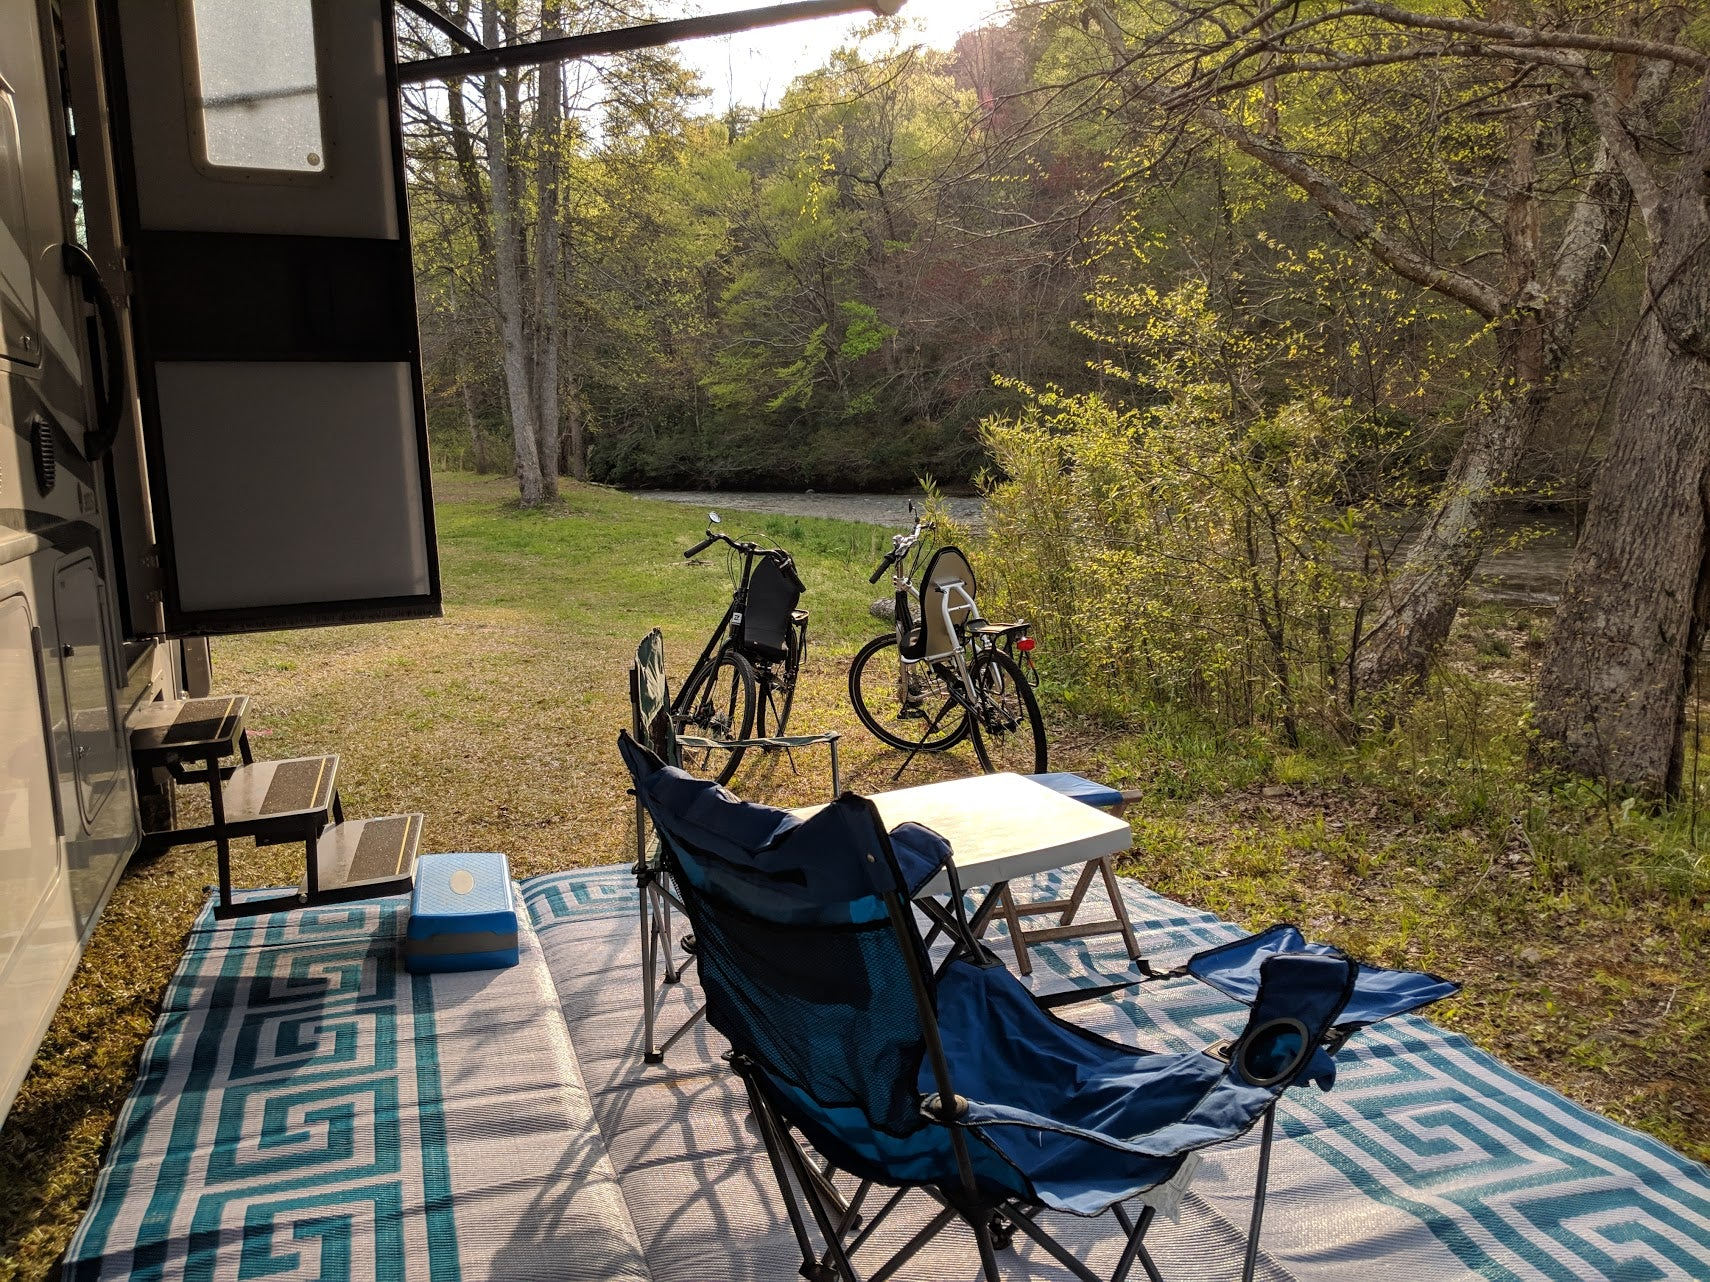 Chief Ladiga Trail Campground with recumbent road bikes.